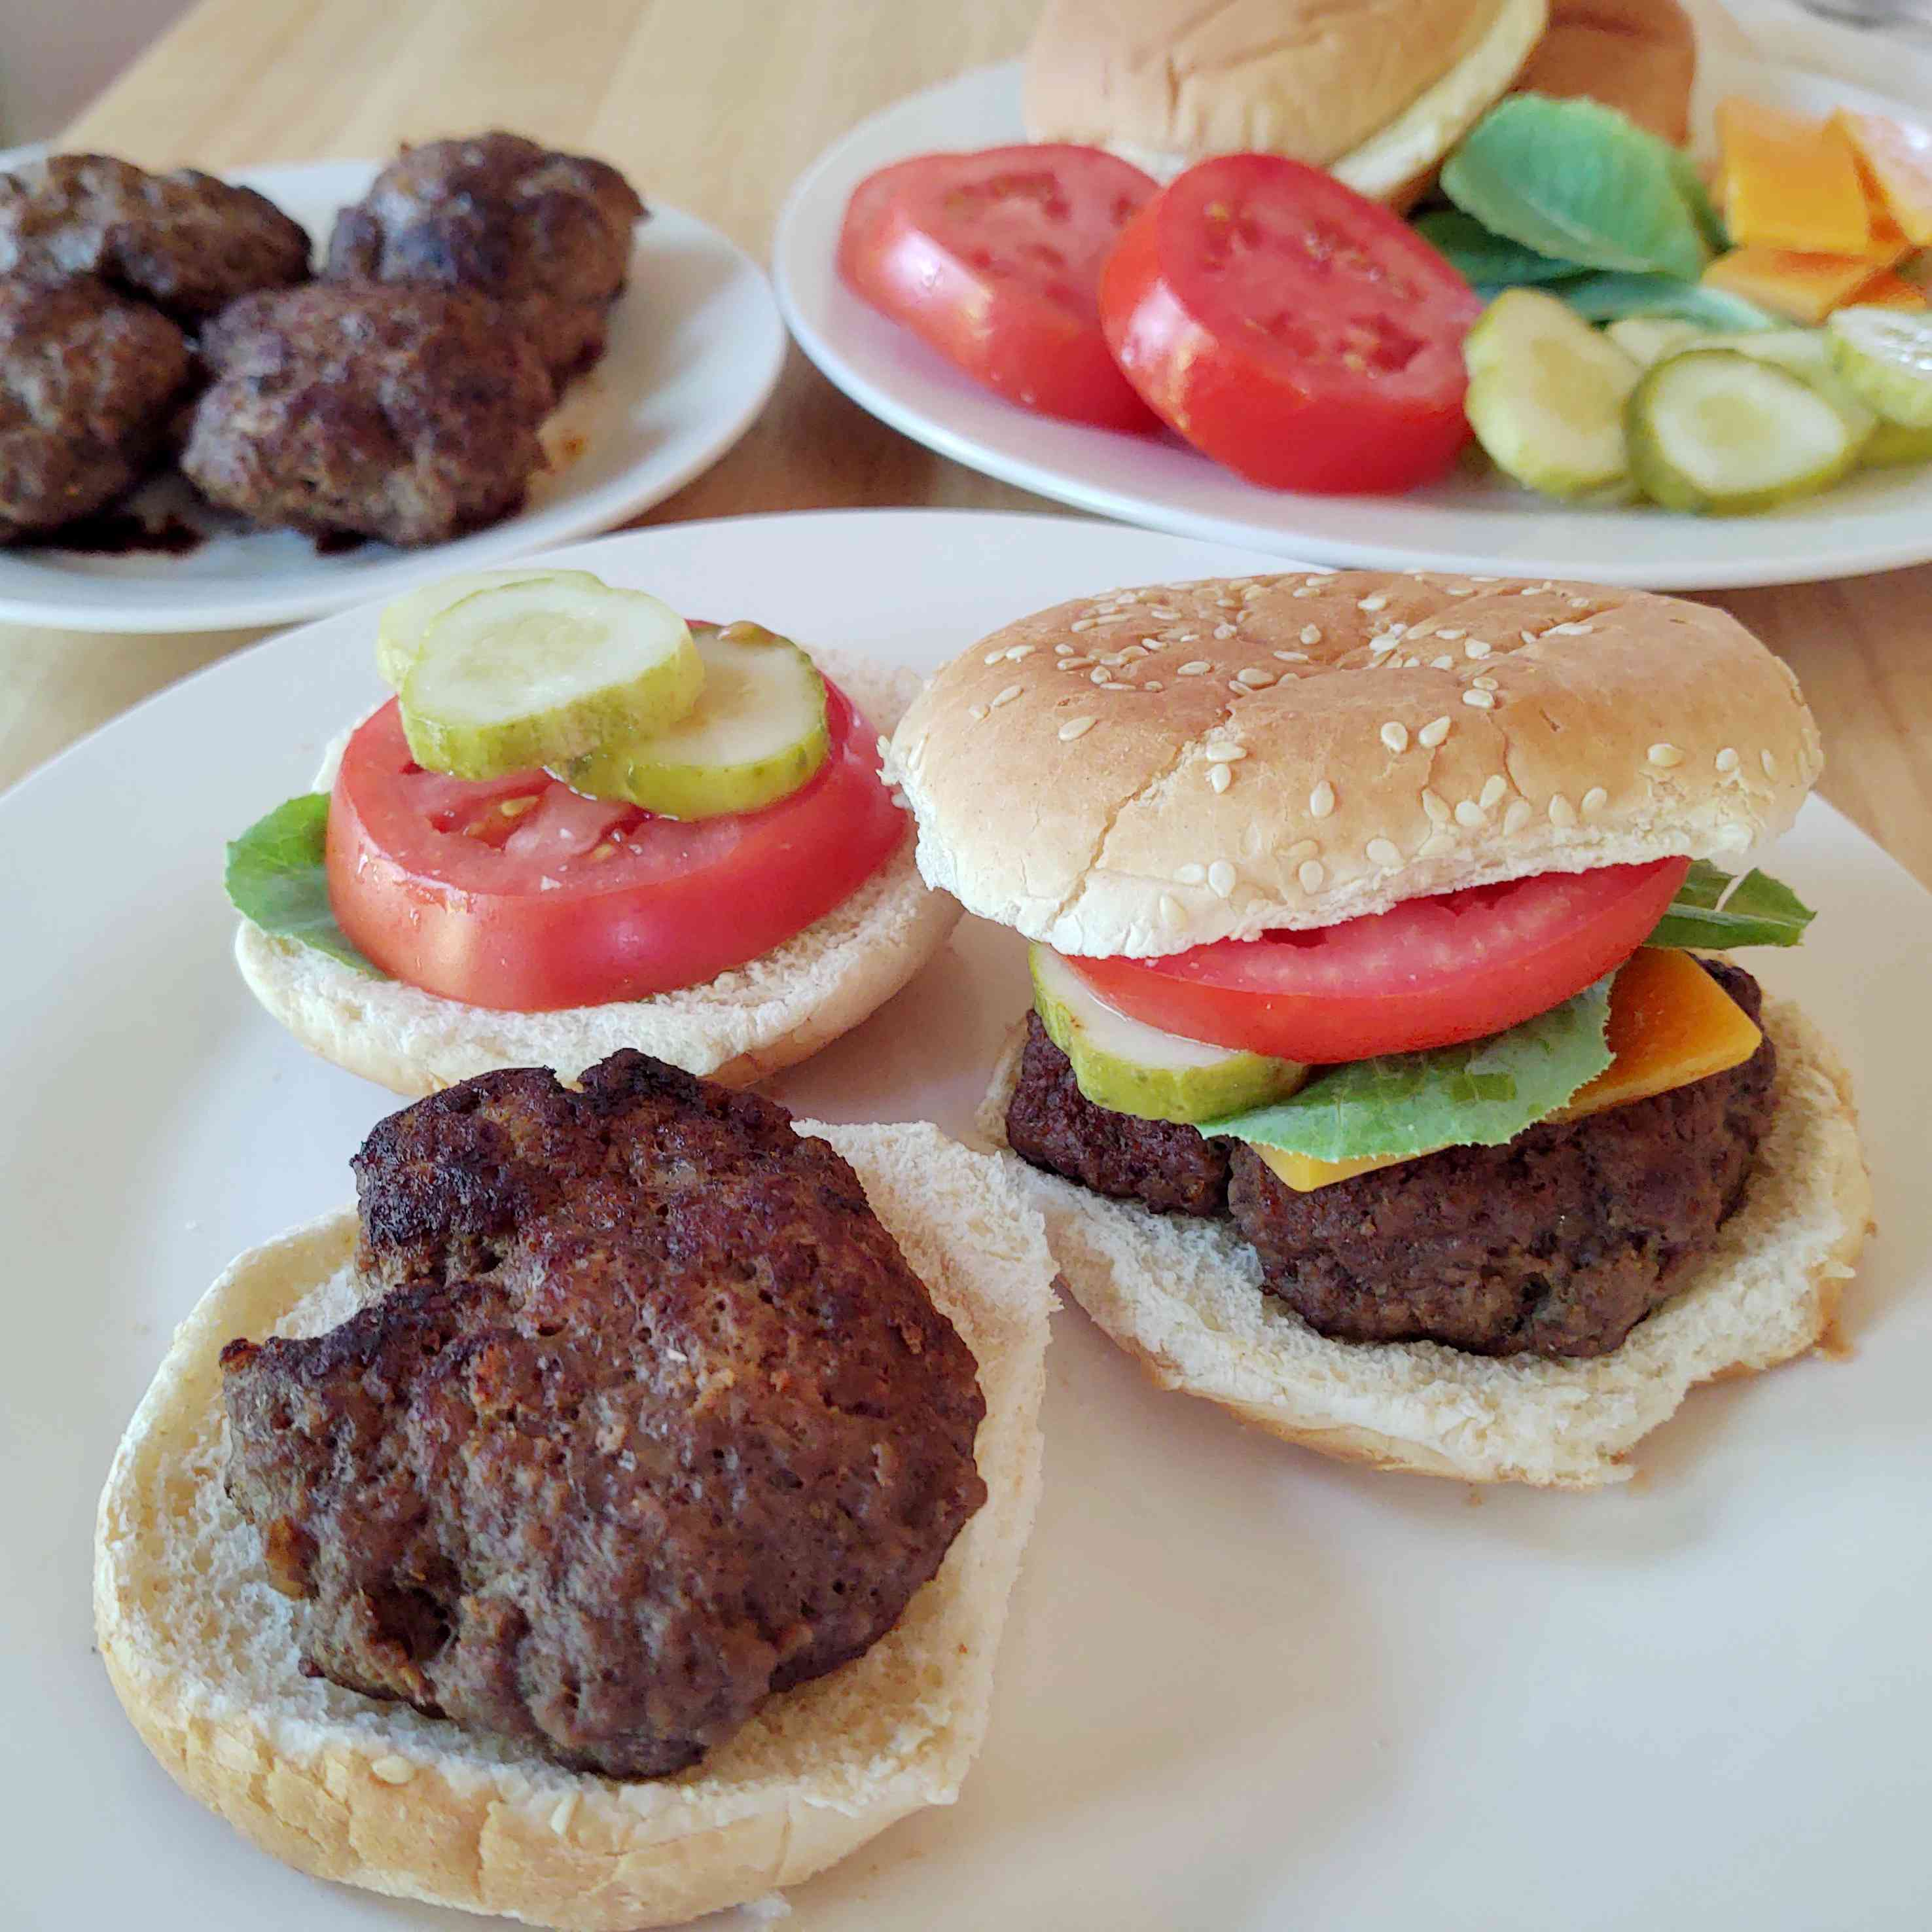 Juicy Oven-Baked Burgers Tester Image